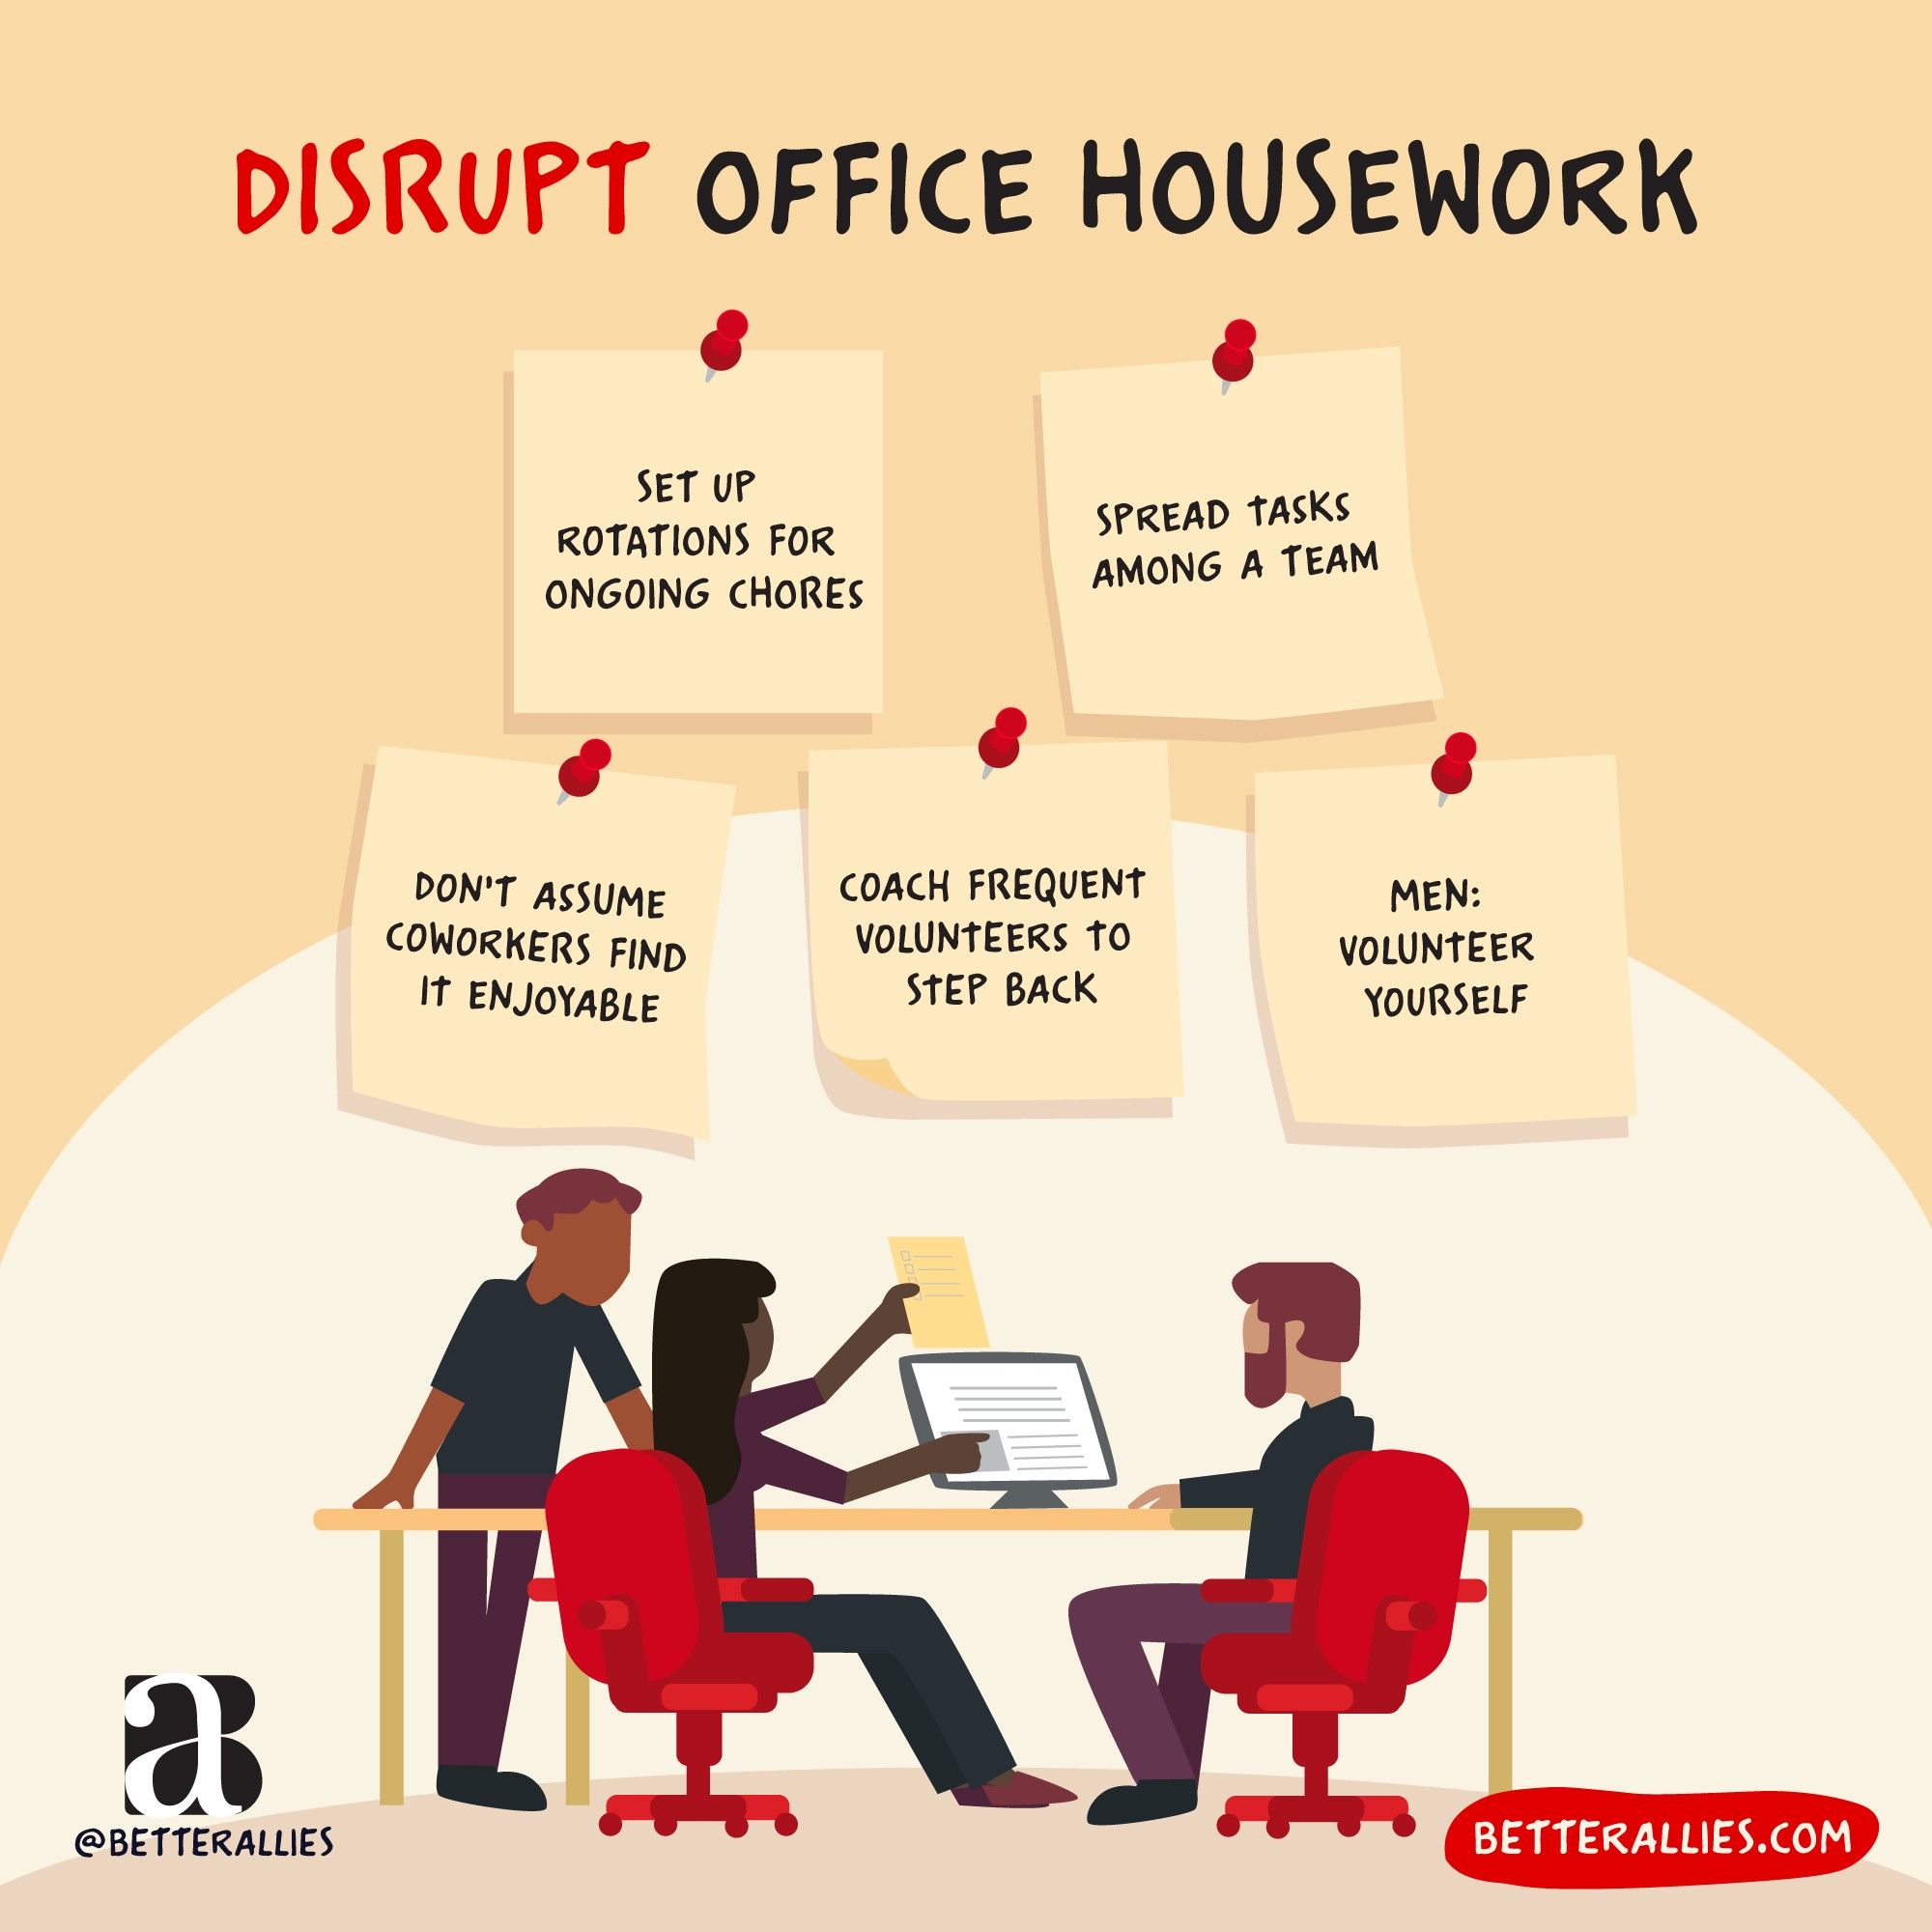 graphic showing sticky notes with ways to disrupt office housework by betterallies.com